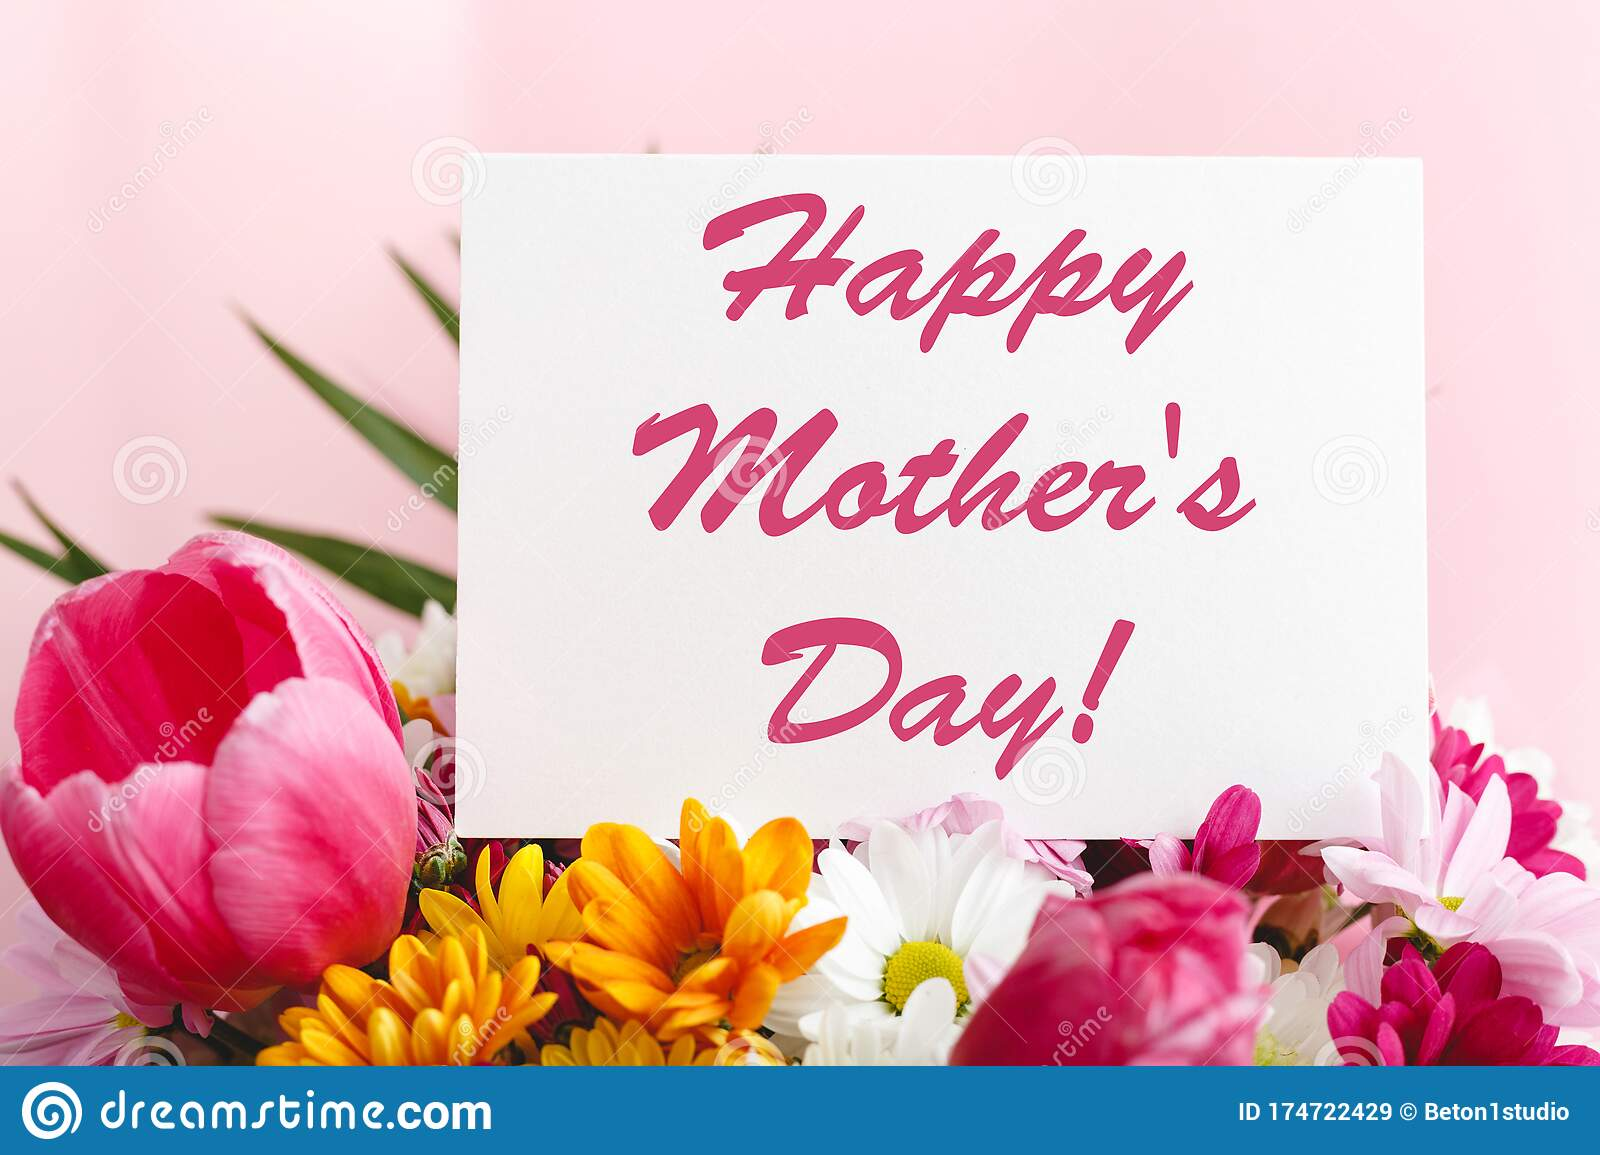 Happy Mothers Day Text On Gift Card In Flower Bouquet On Pink Background Greeting Card For Mom Flower Delivery Congratulations Stock Image Image Of Decoration Female 174722429